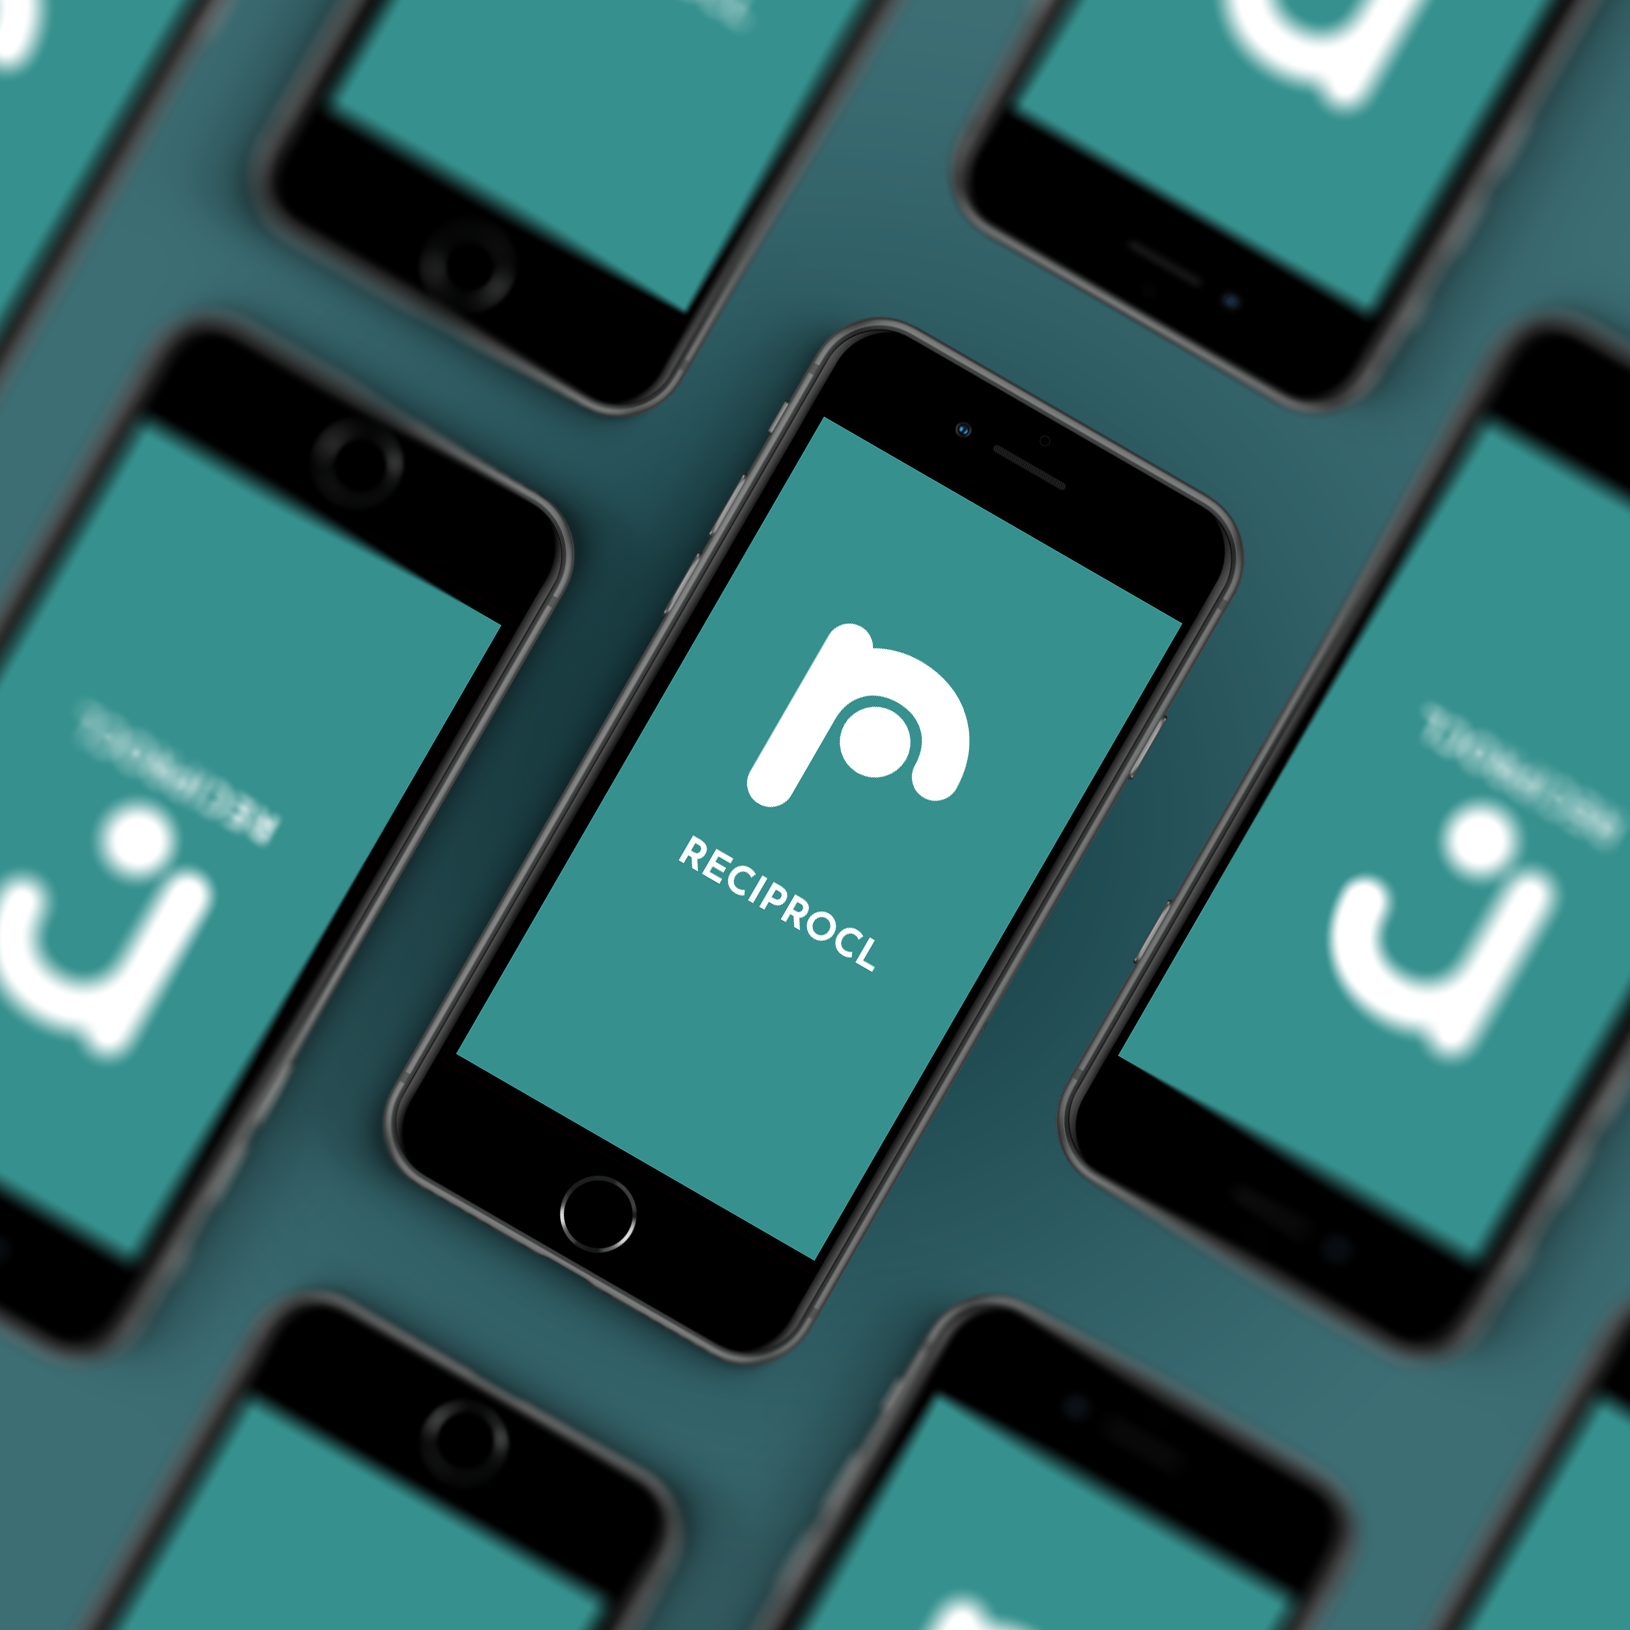 Cover image for Reciprocl, an app prototype